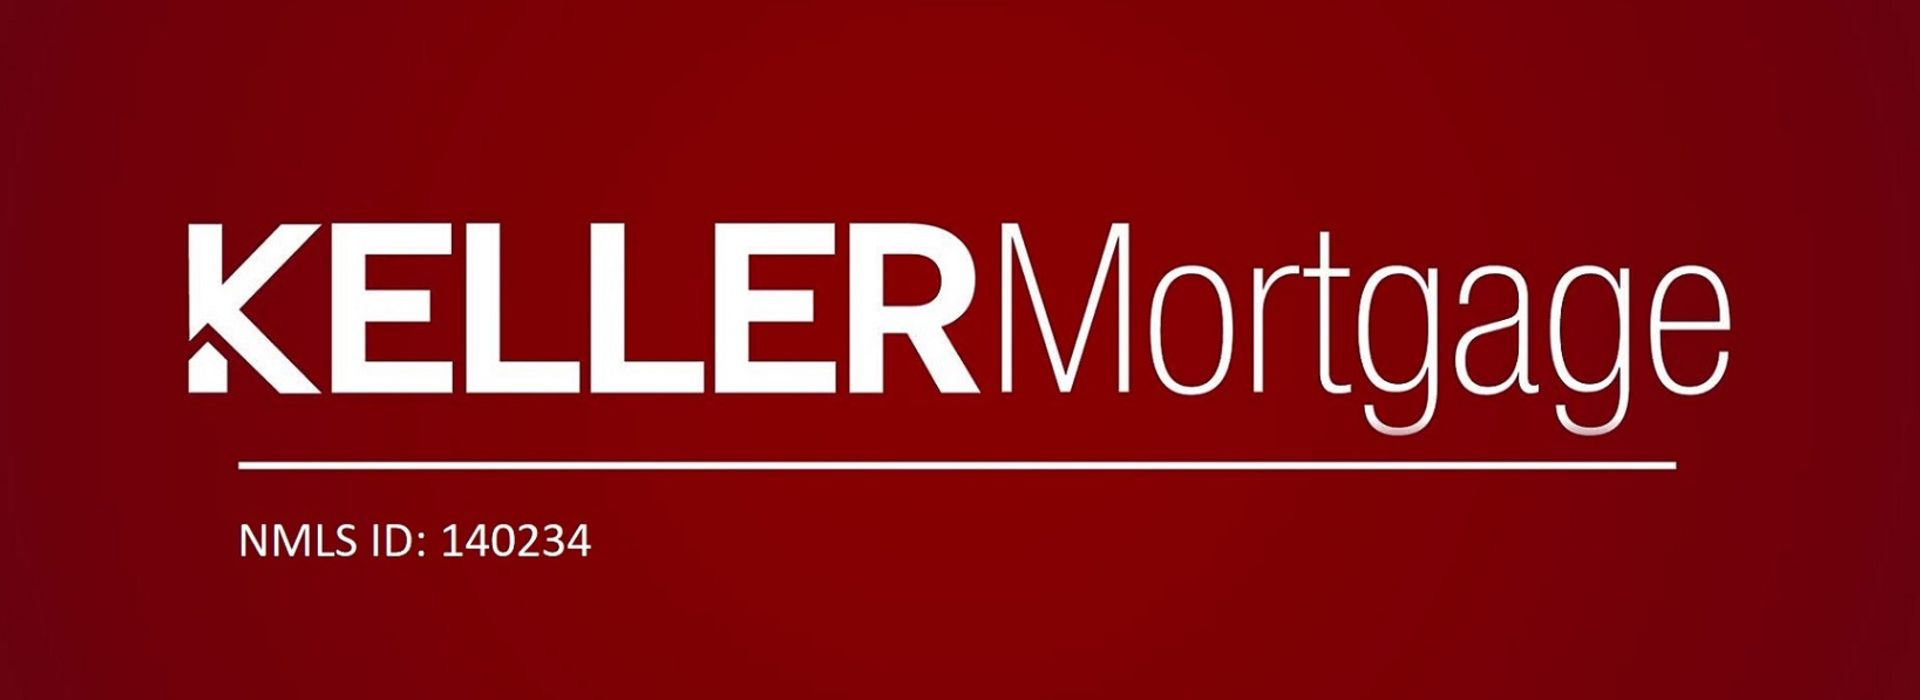 Keller Mortgage will Save You Thousands!